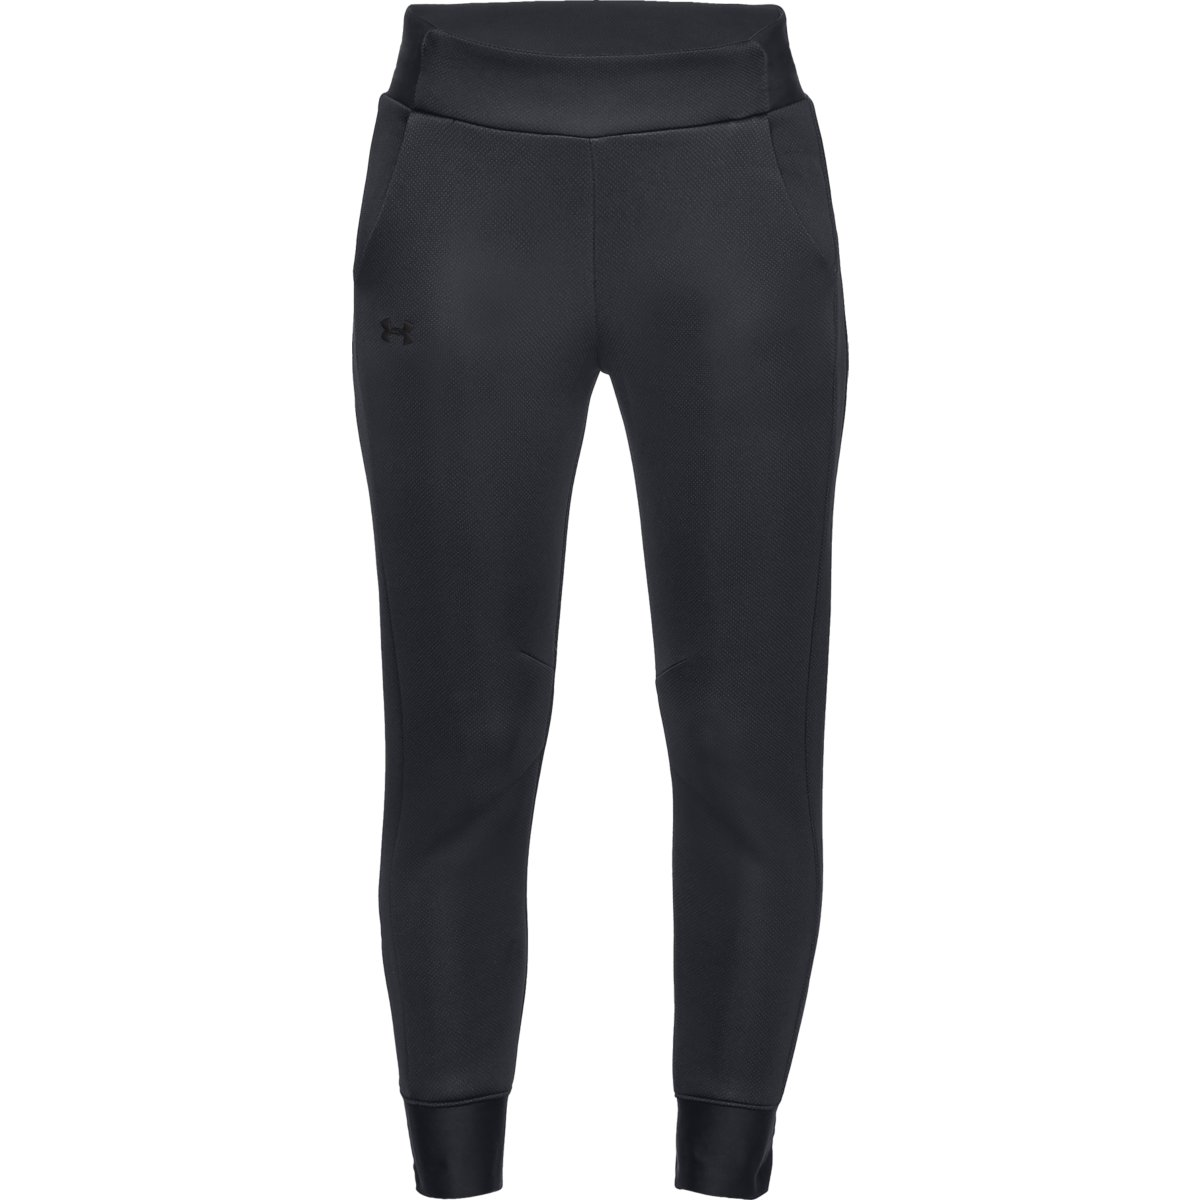 Under Armour Women's Move Pant | Amour